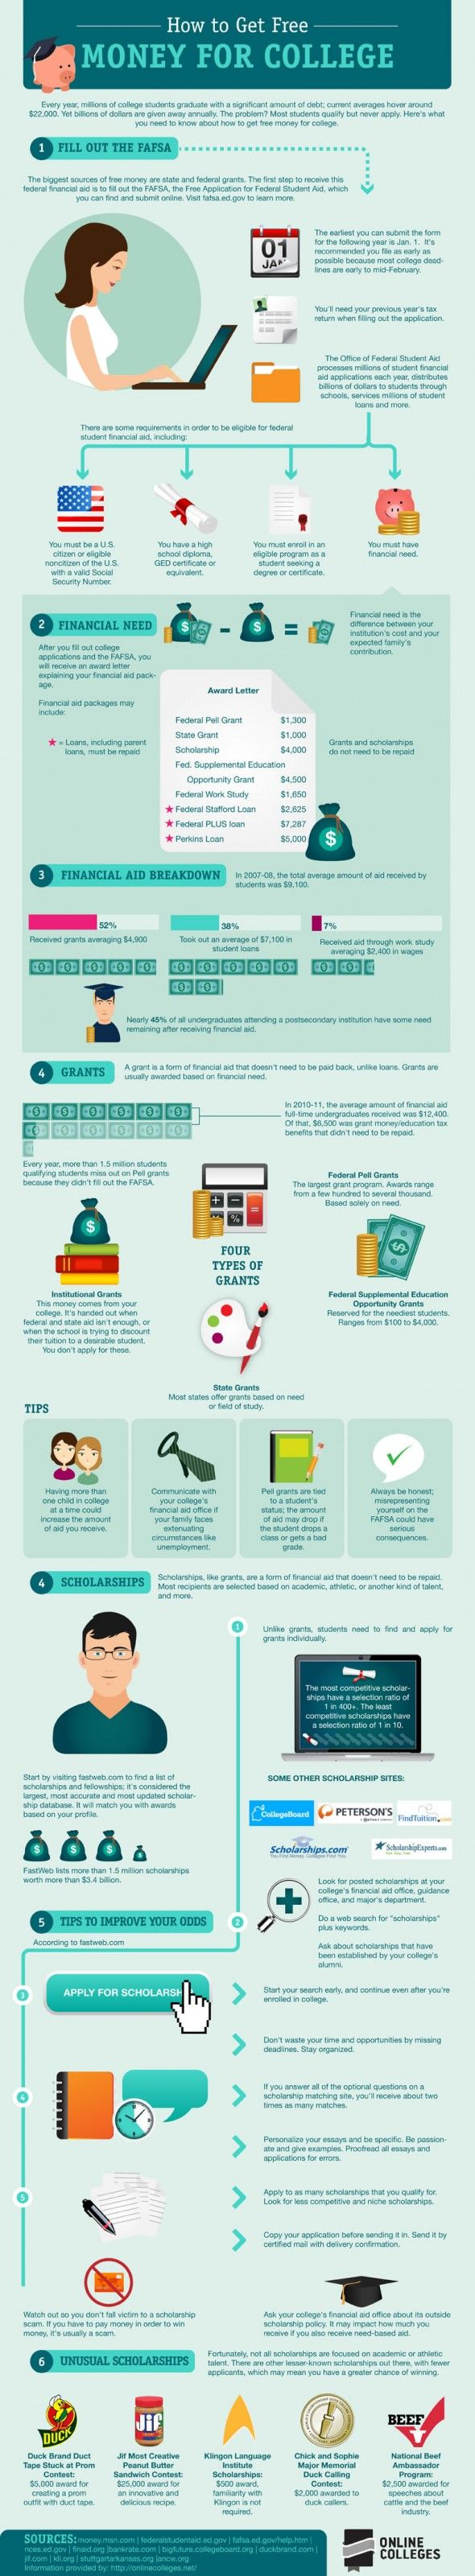 infographic how to get money for college scholarships infographic how to get money for college